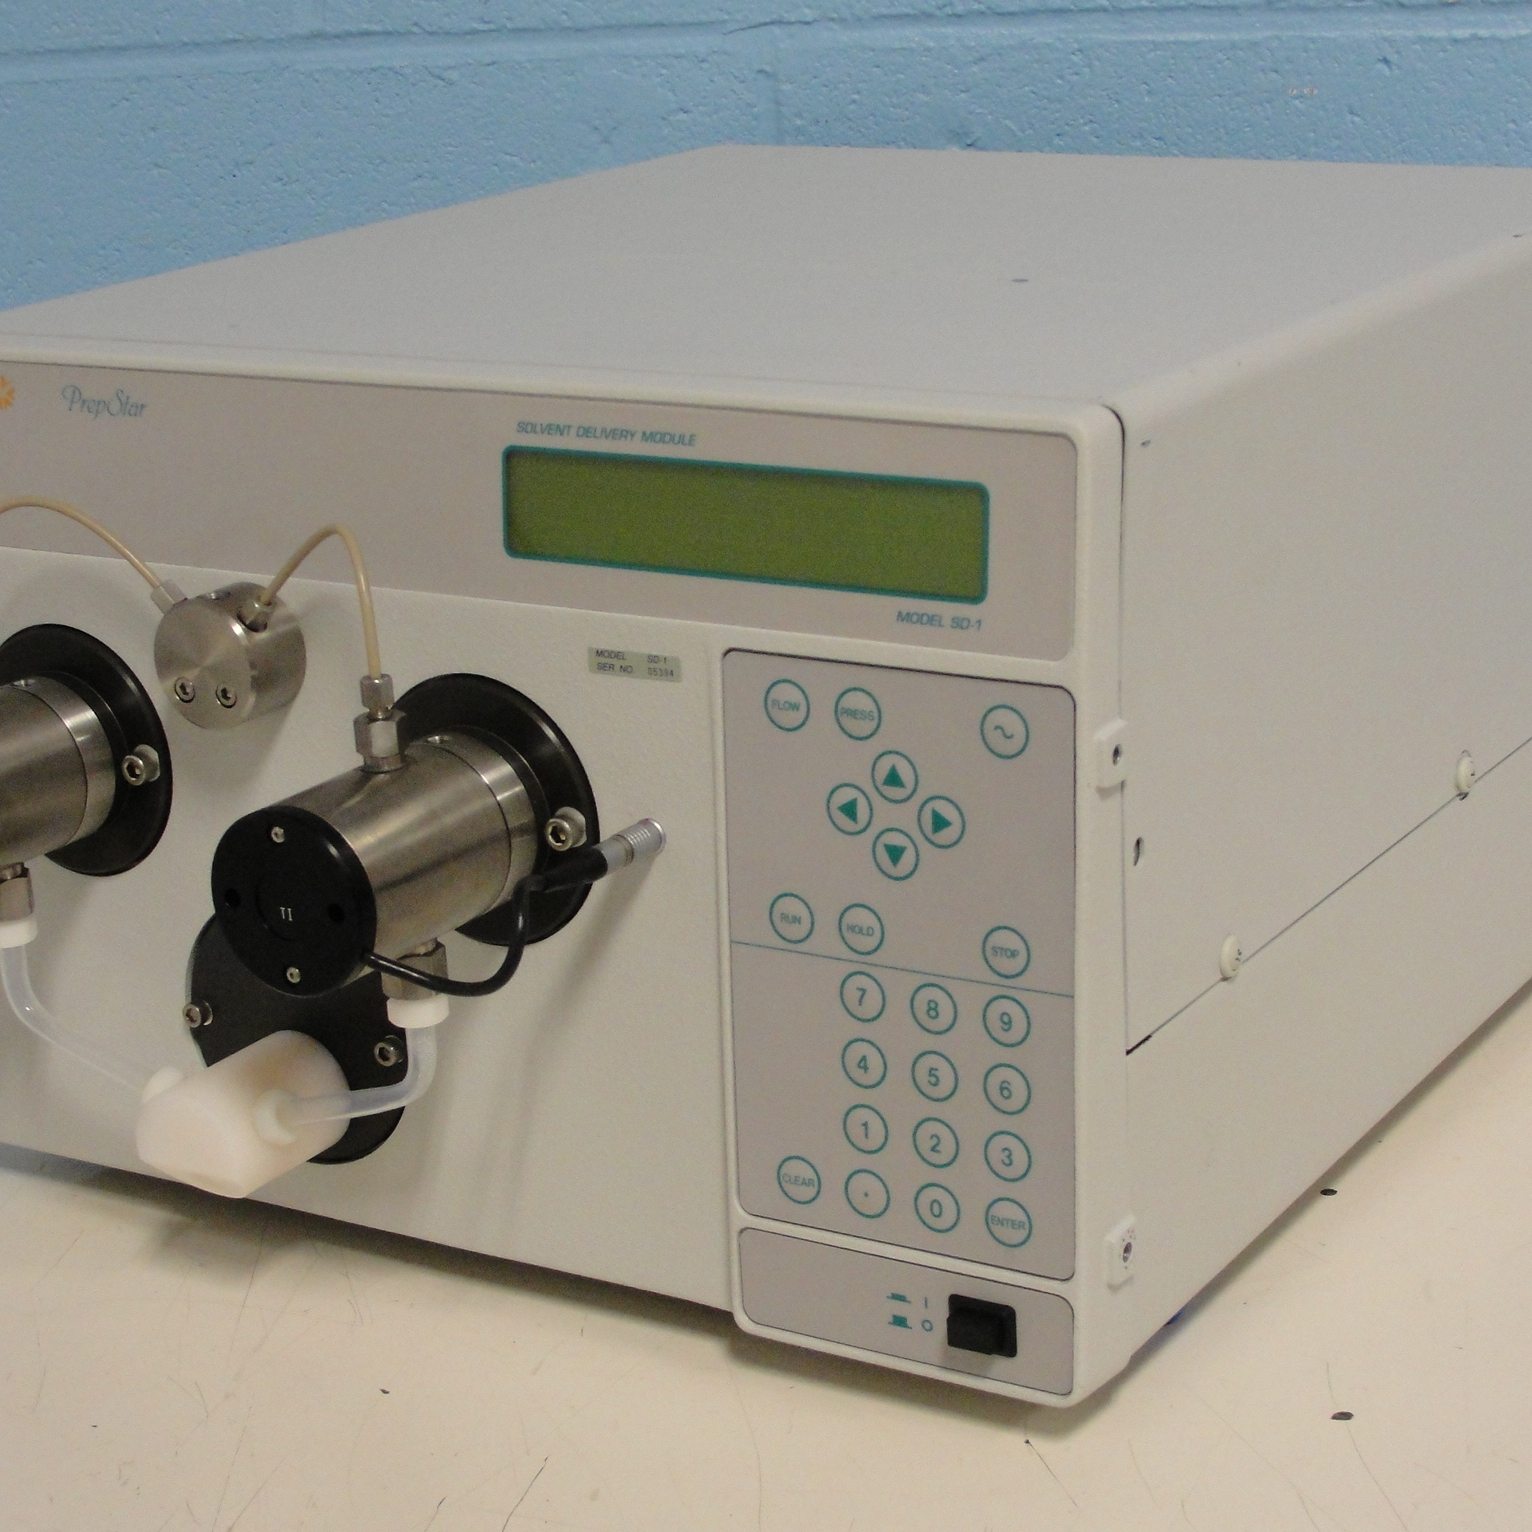 Varian PrepStar SD-1 Digital Solvent Delivery Module with 500 TI Pump Heads Image